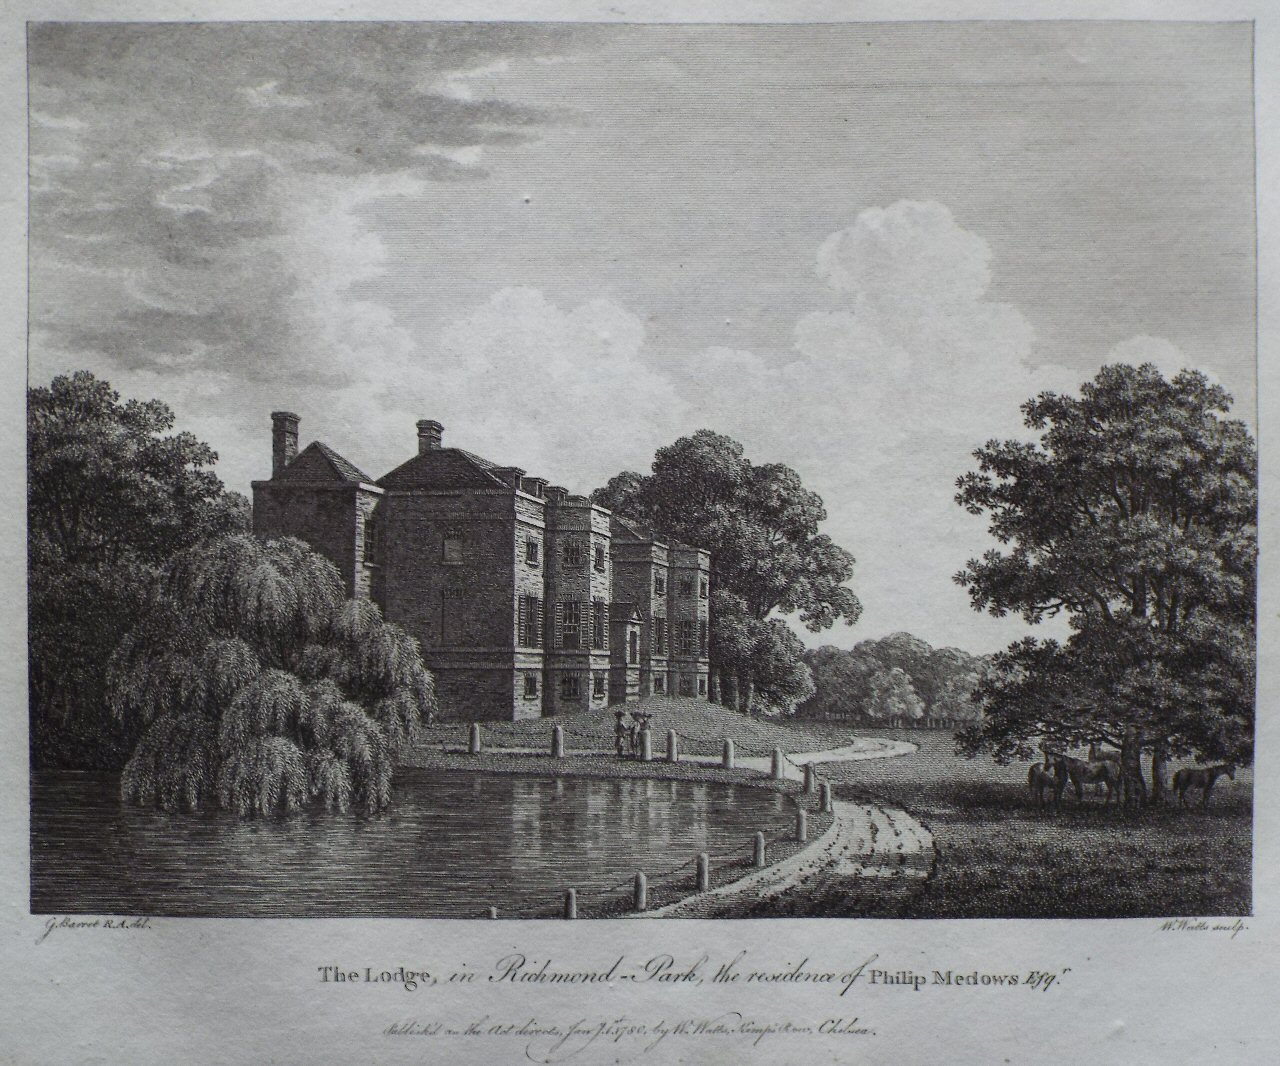 Print - The Lodge, in Richmond-Park, the Residence of Philip Medows Esqr. - Watts